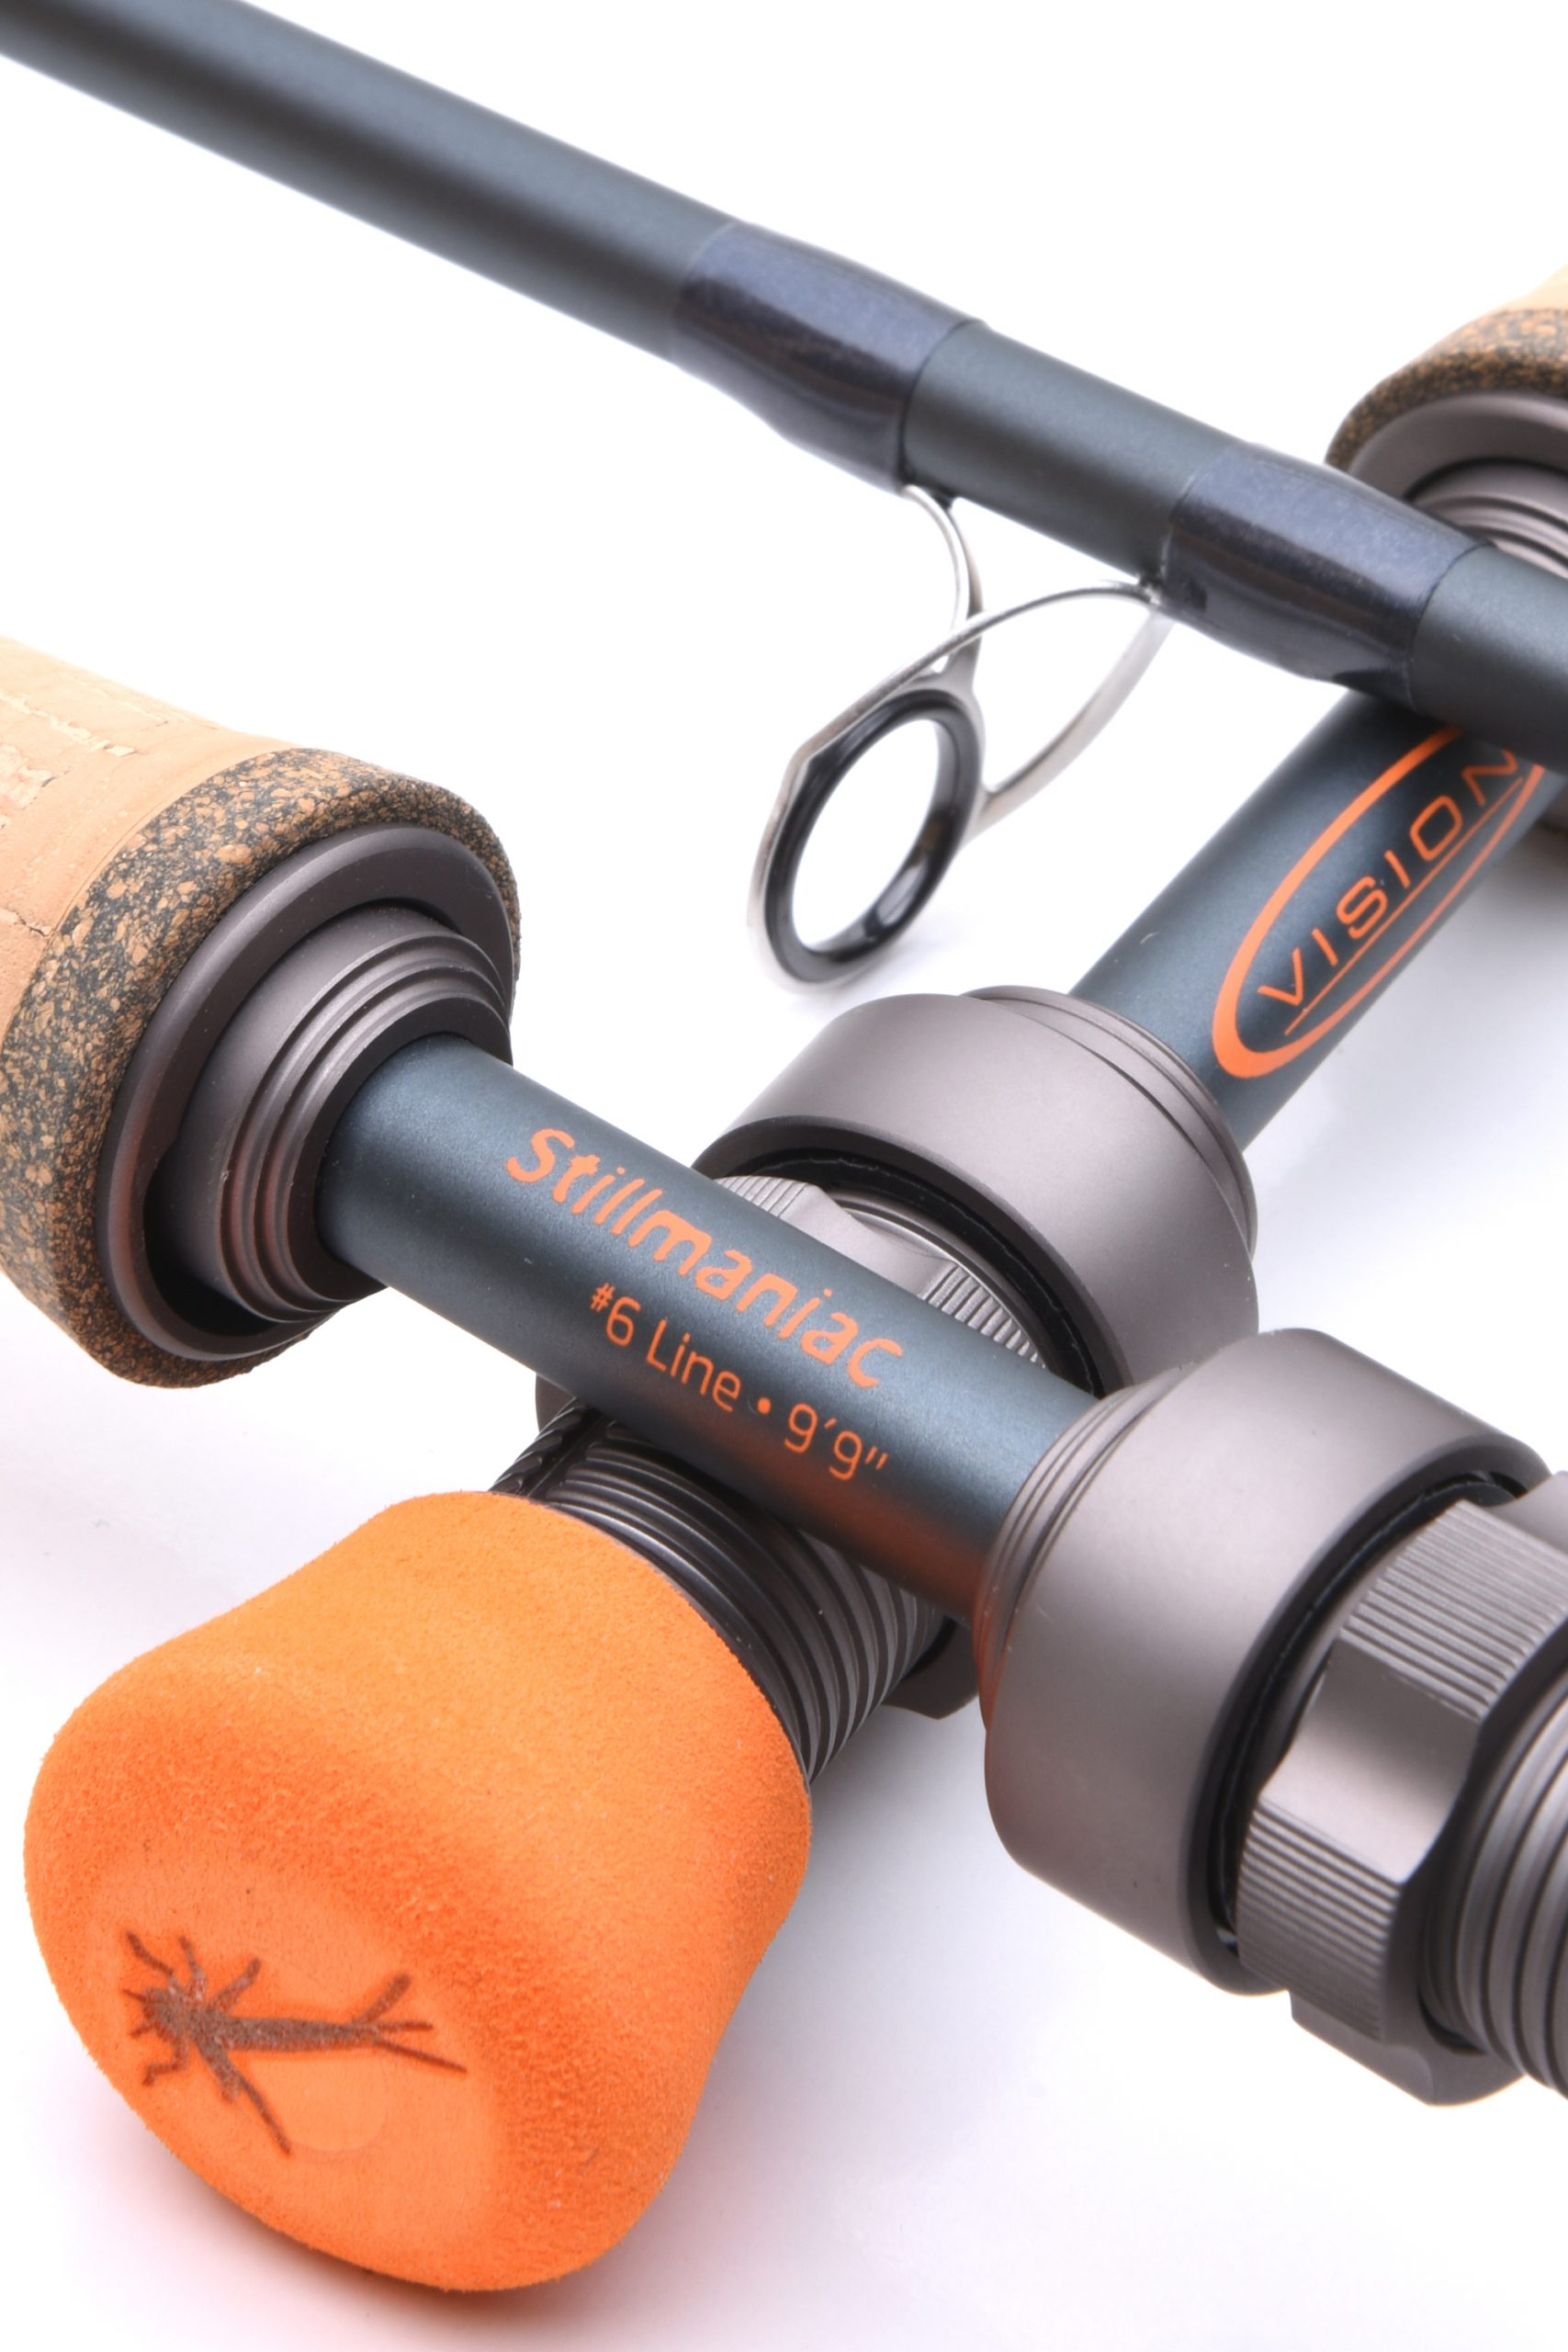 caña-vision-stillmaniac-fly-rod